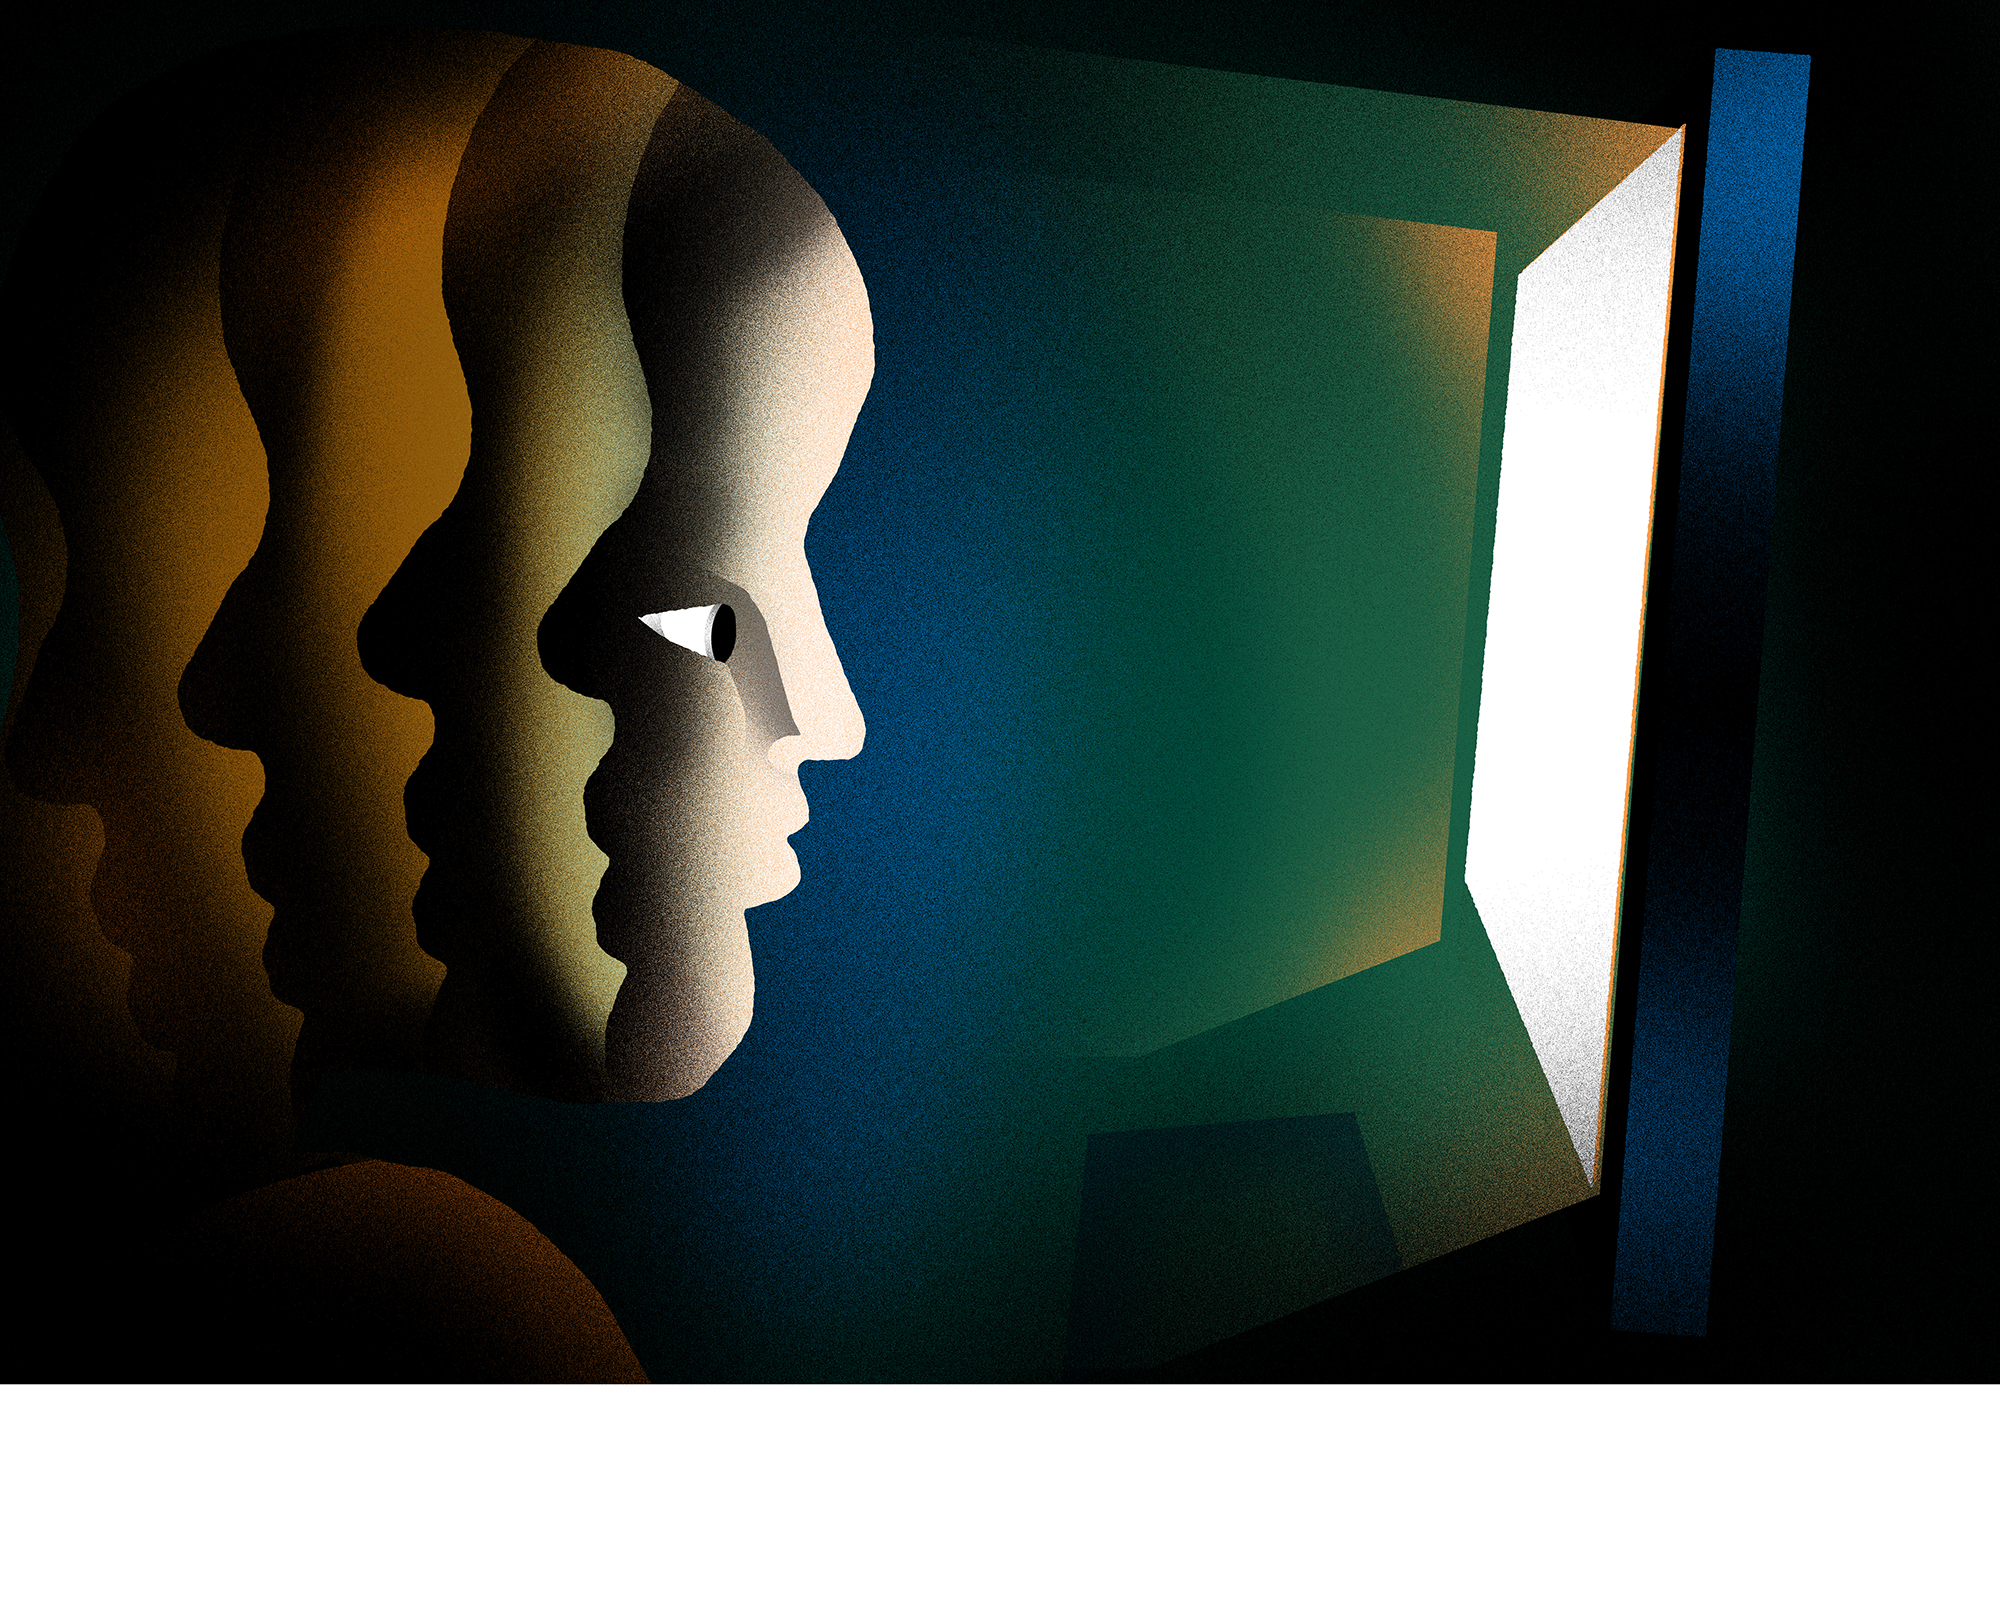 Illustration: A person in shadow looks into a bright computer screen. The mood is ominous.